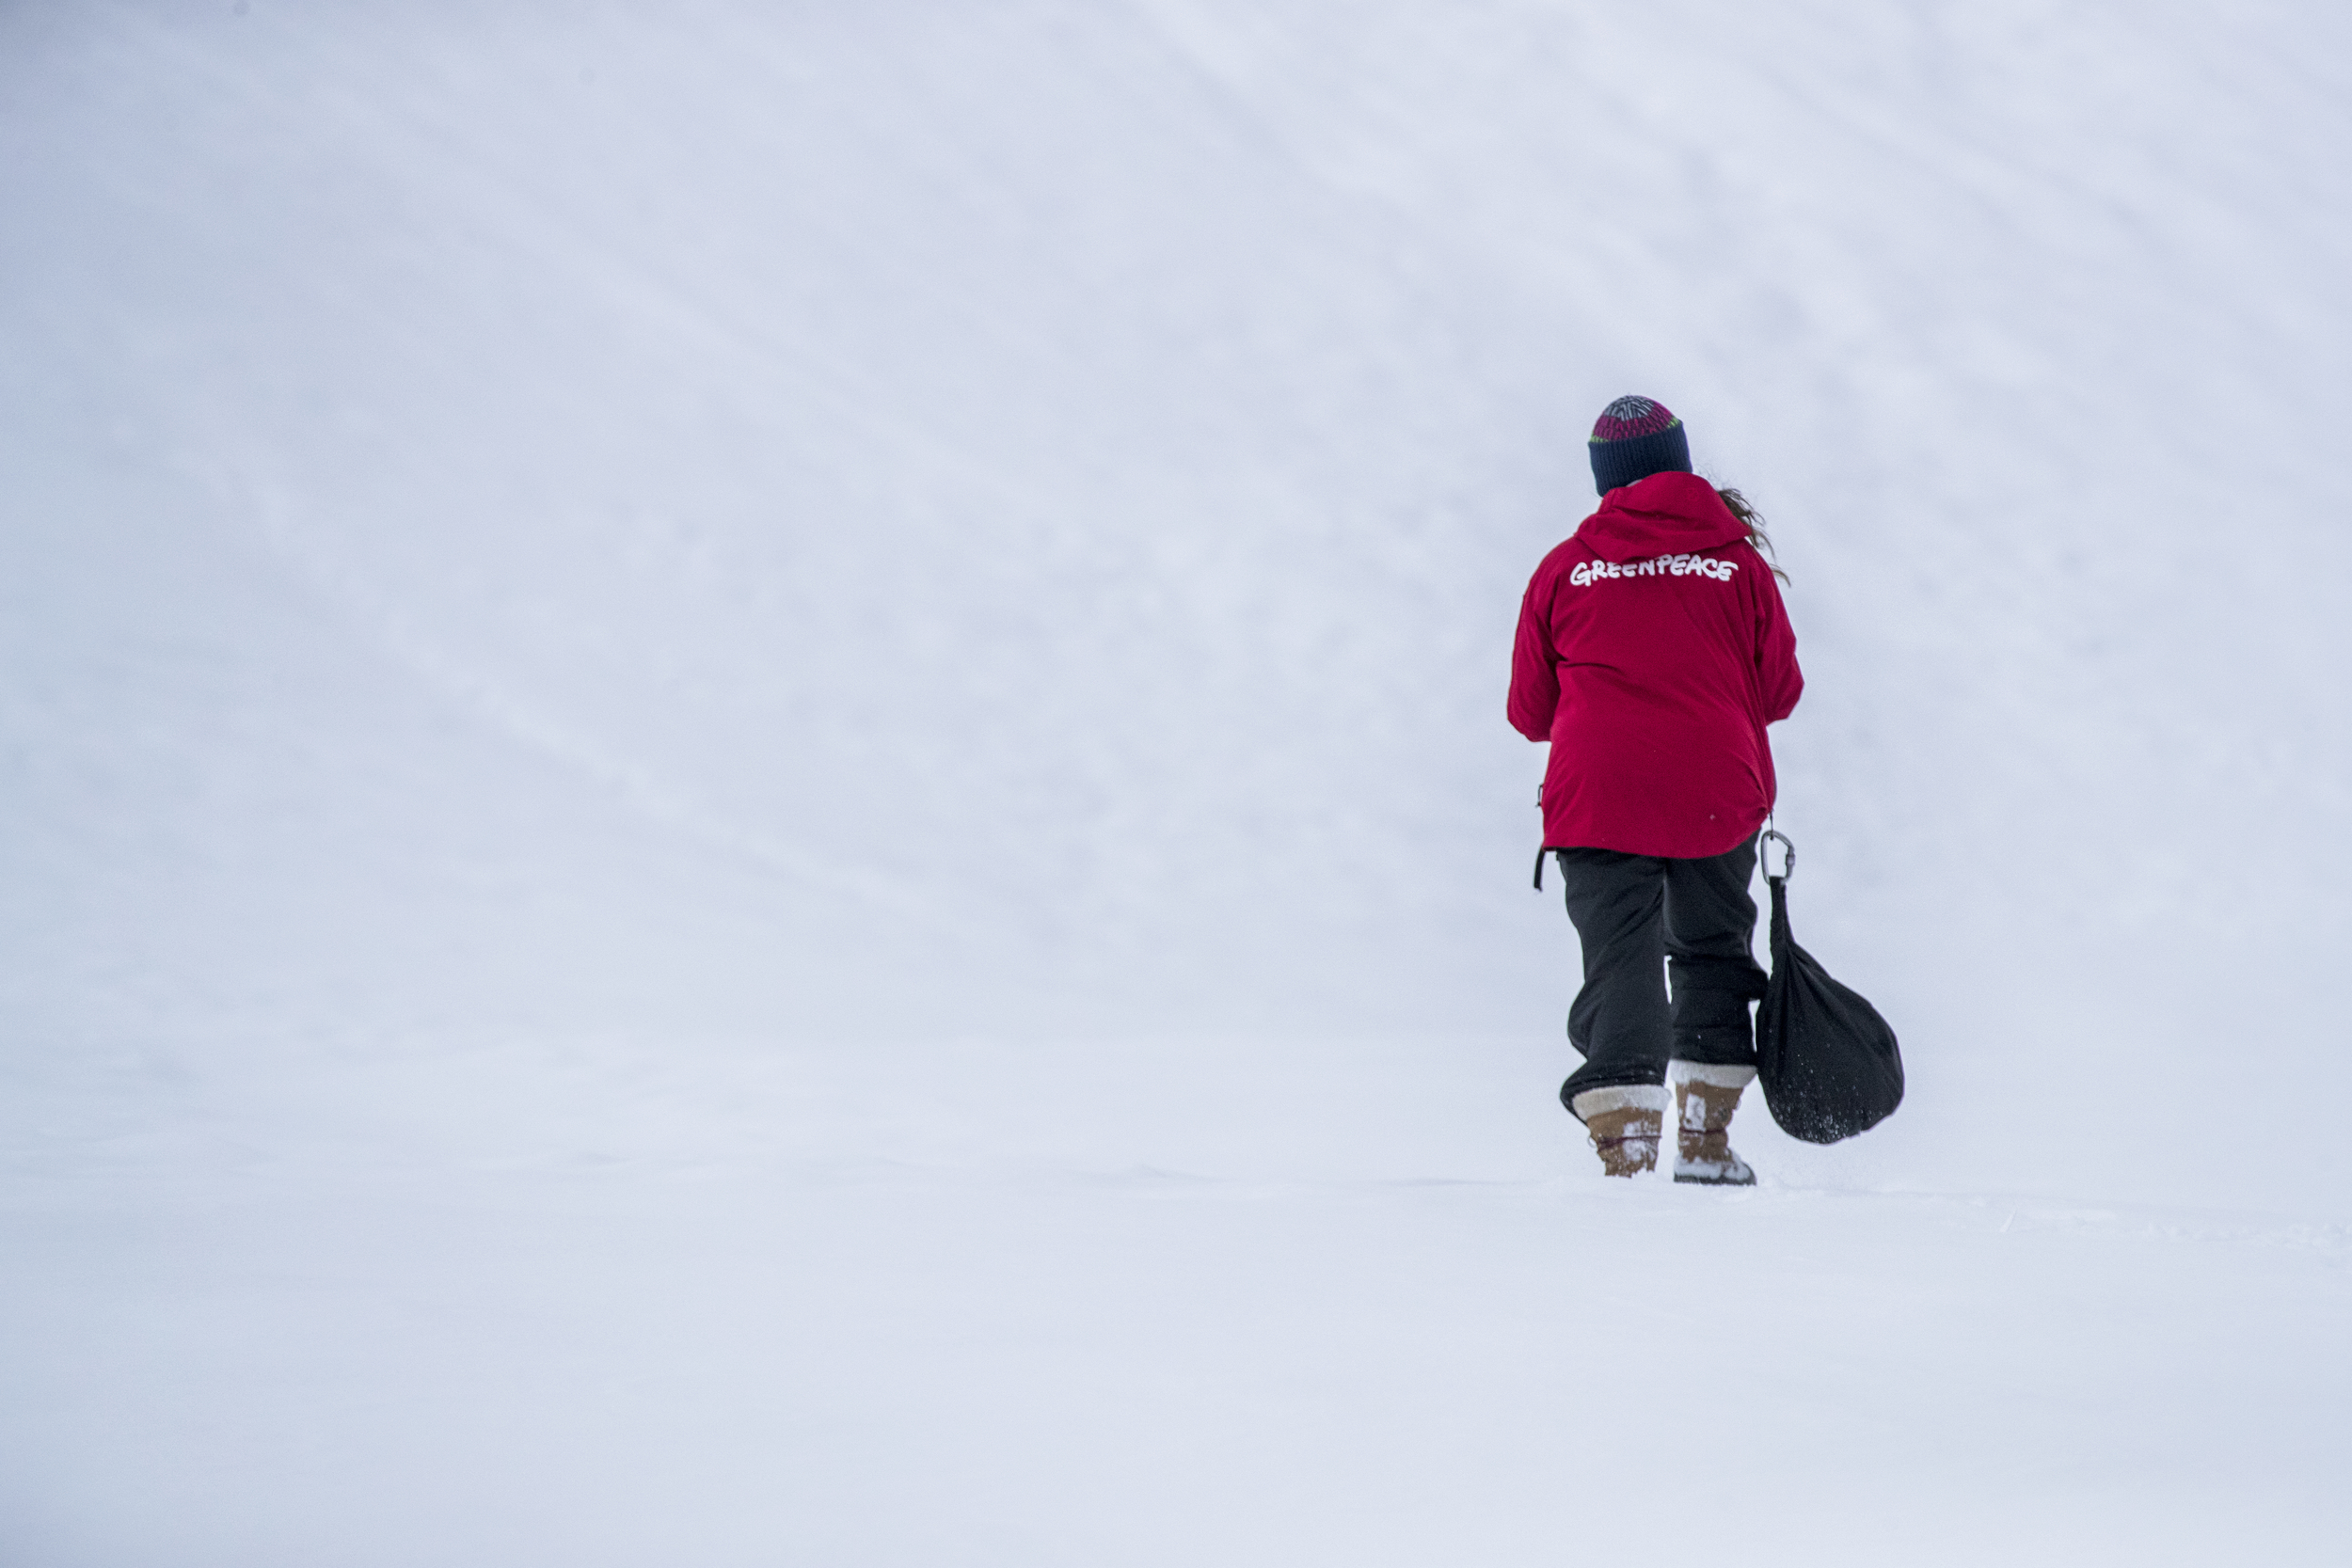 Meena walking alone in the distance in the Antarctic, surrounded by snow